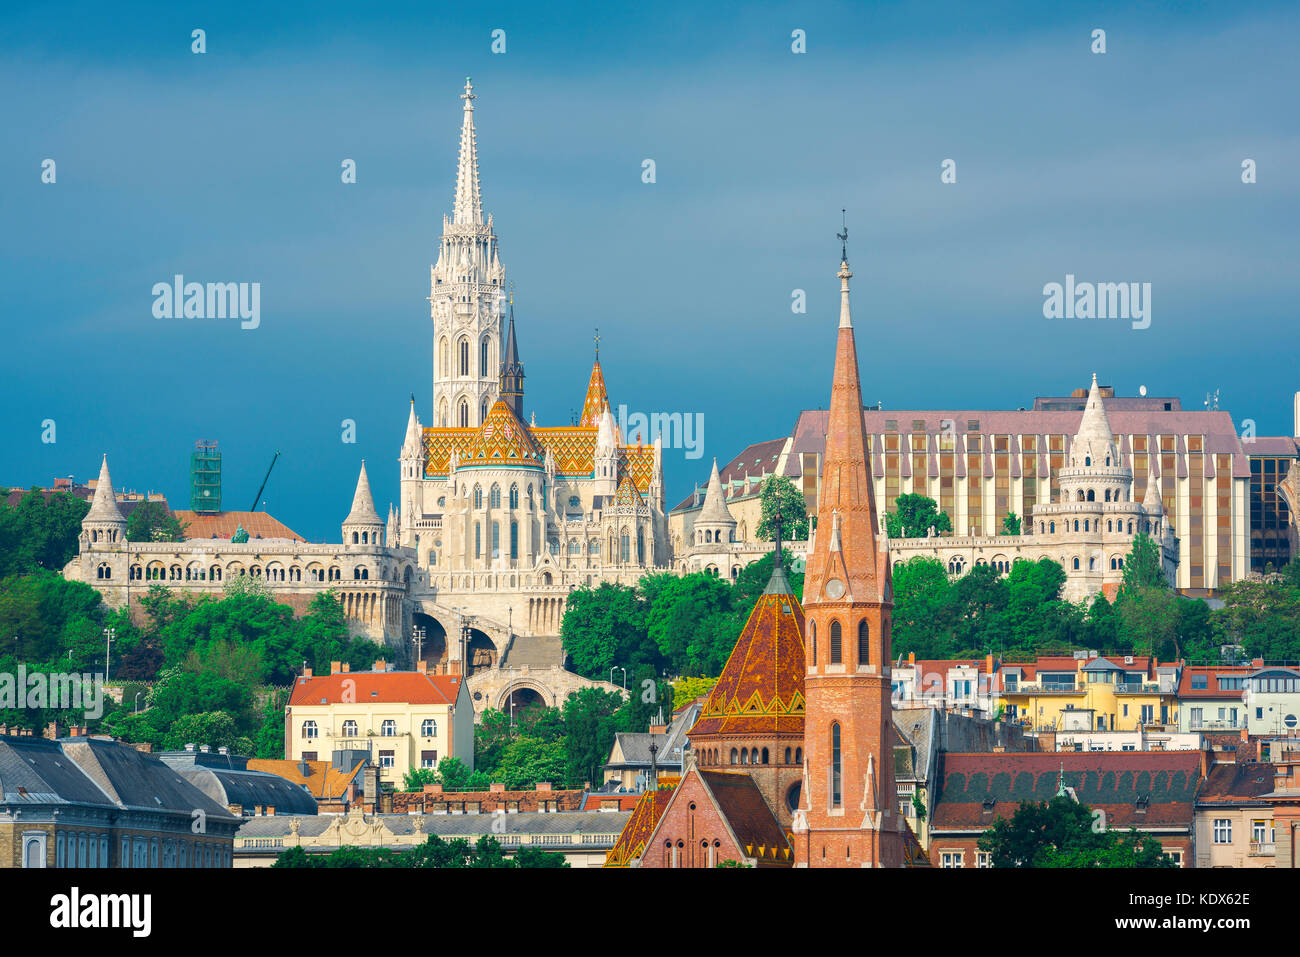 Budapest landmark, view of the Fishermen's Bastion and Matyas Church on Buda Hill on the west side of the city - Stock Image